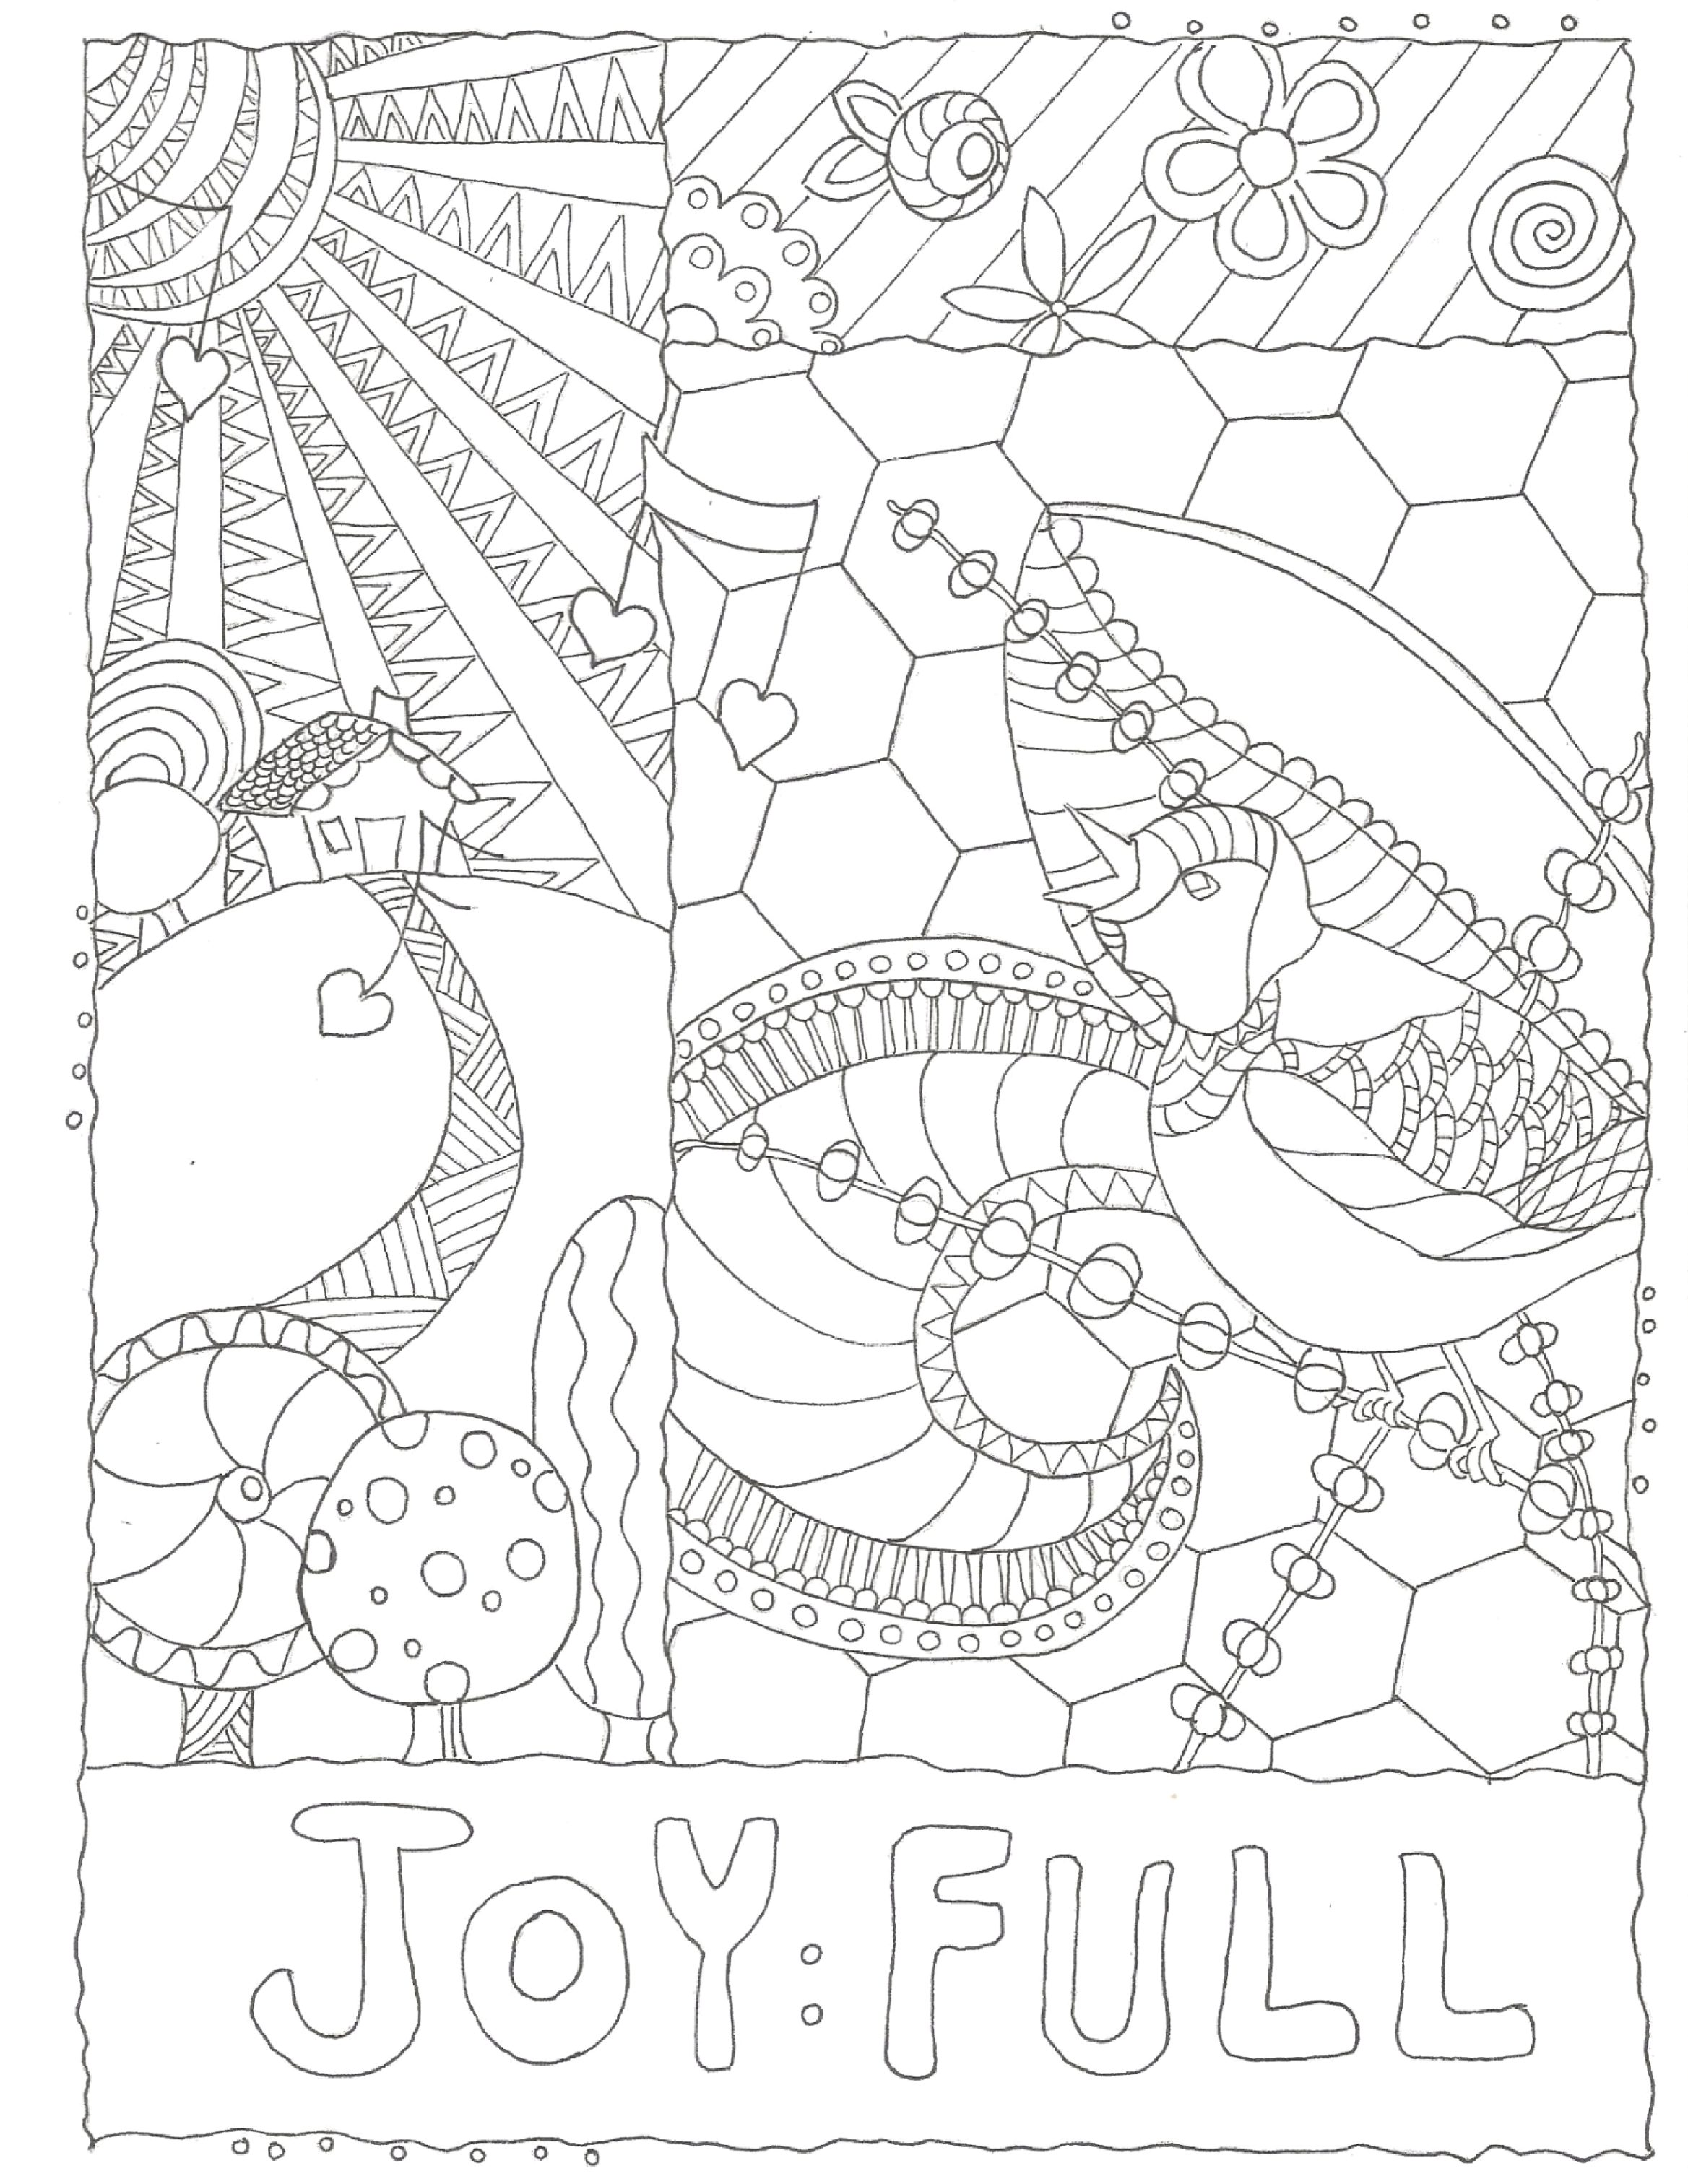 Making life Joy:Full! Start with a free coloring page! www.sandykayemoss.com